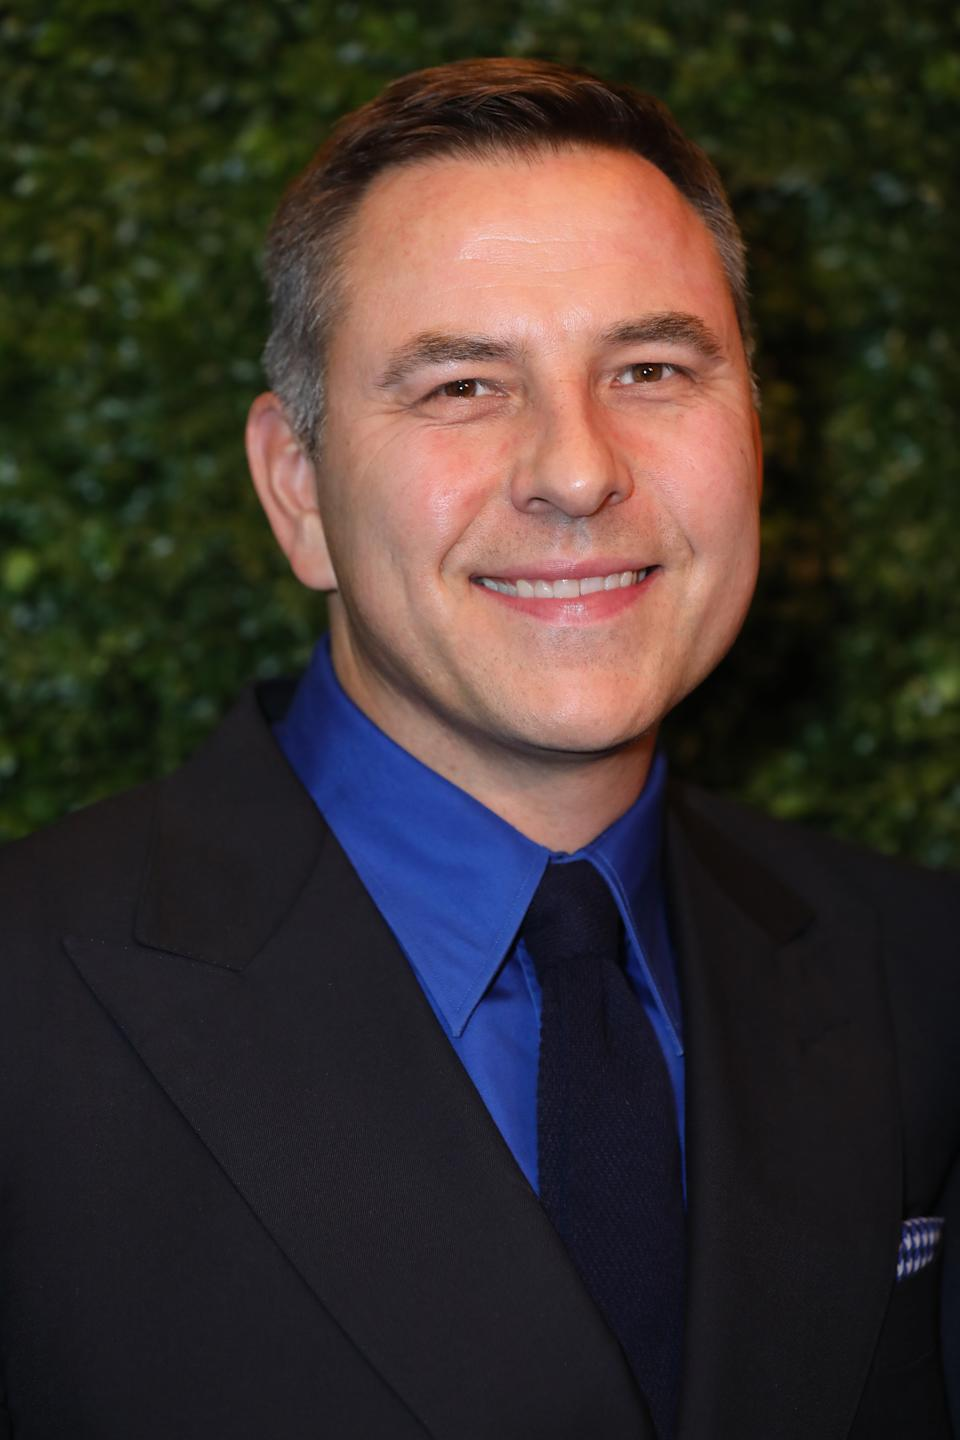 David Walliams arriving at the Charles Finch and Chanel pre-Bafta party at 5 Hertford Street in Mayfair, London.